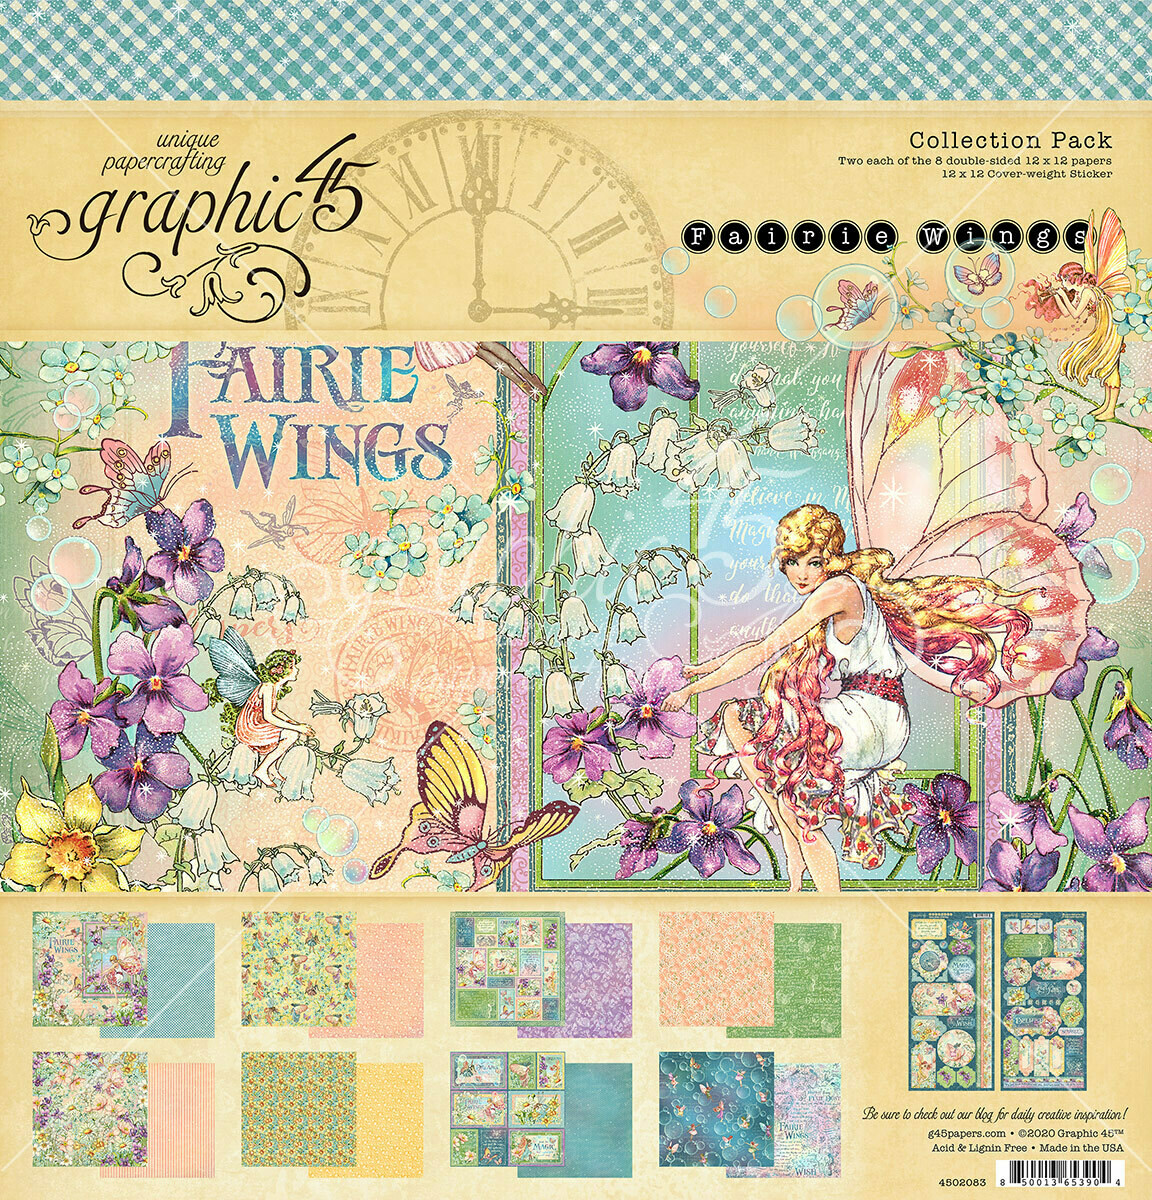 Fairie Wings - 12x12 Collection Pack w/ Stickers - Graphic 45